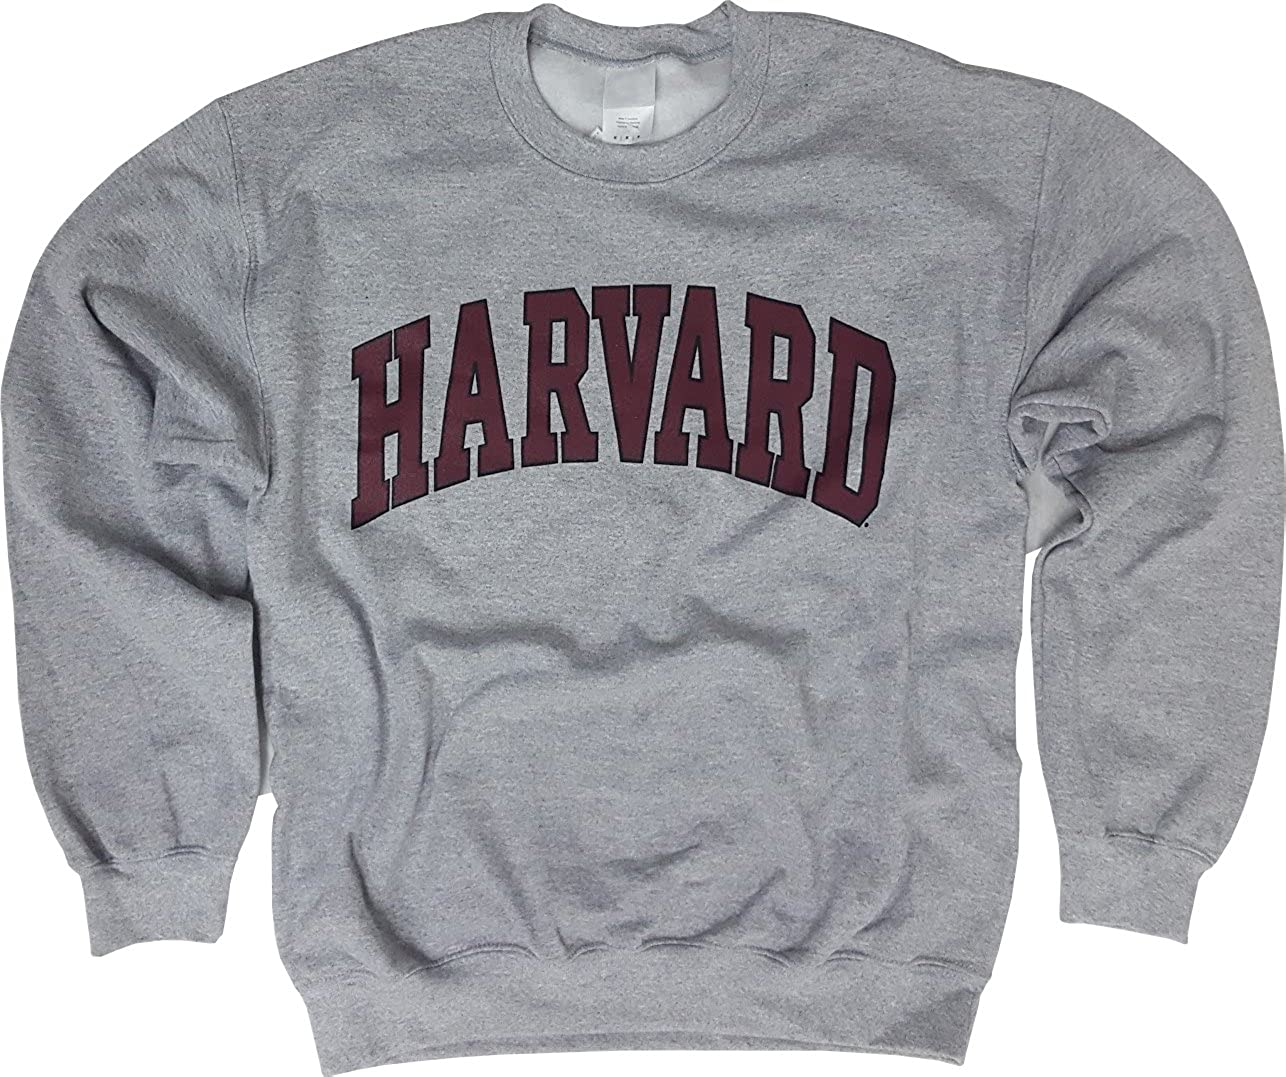 fantastic savings official images sports shoes Harvard University Sweatshirt - Officially Licensed Arched Block Crewneck